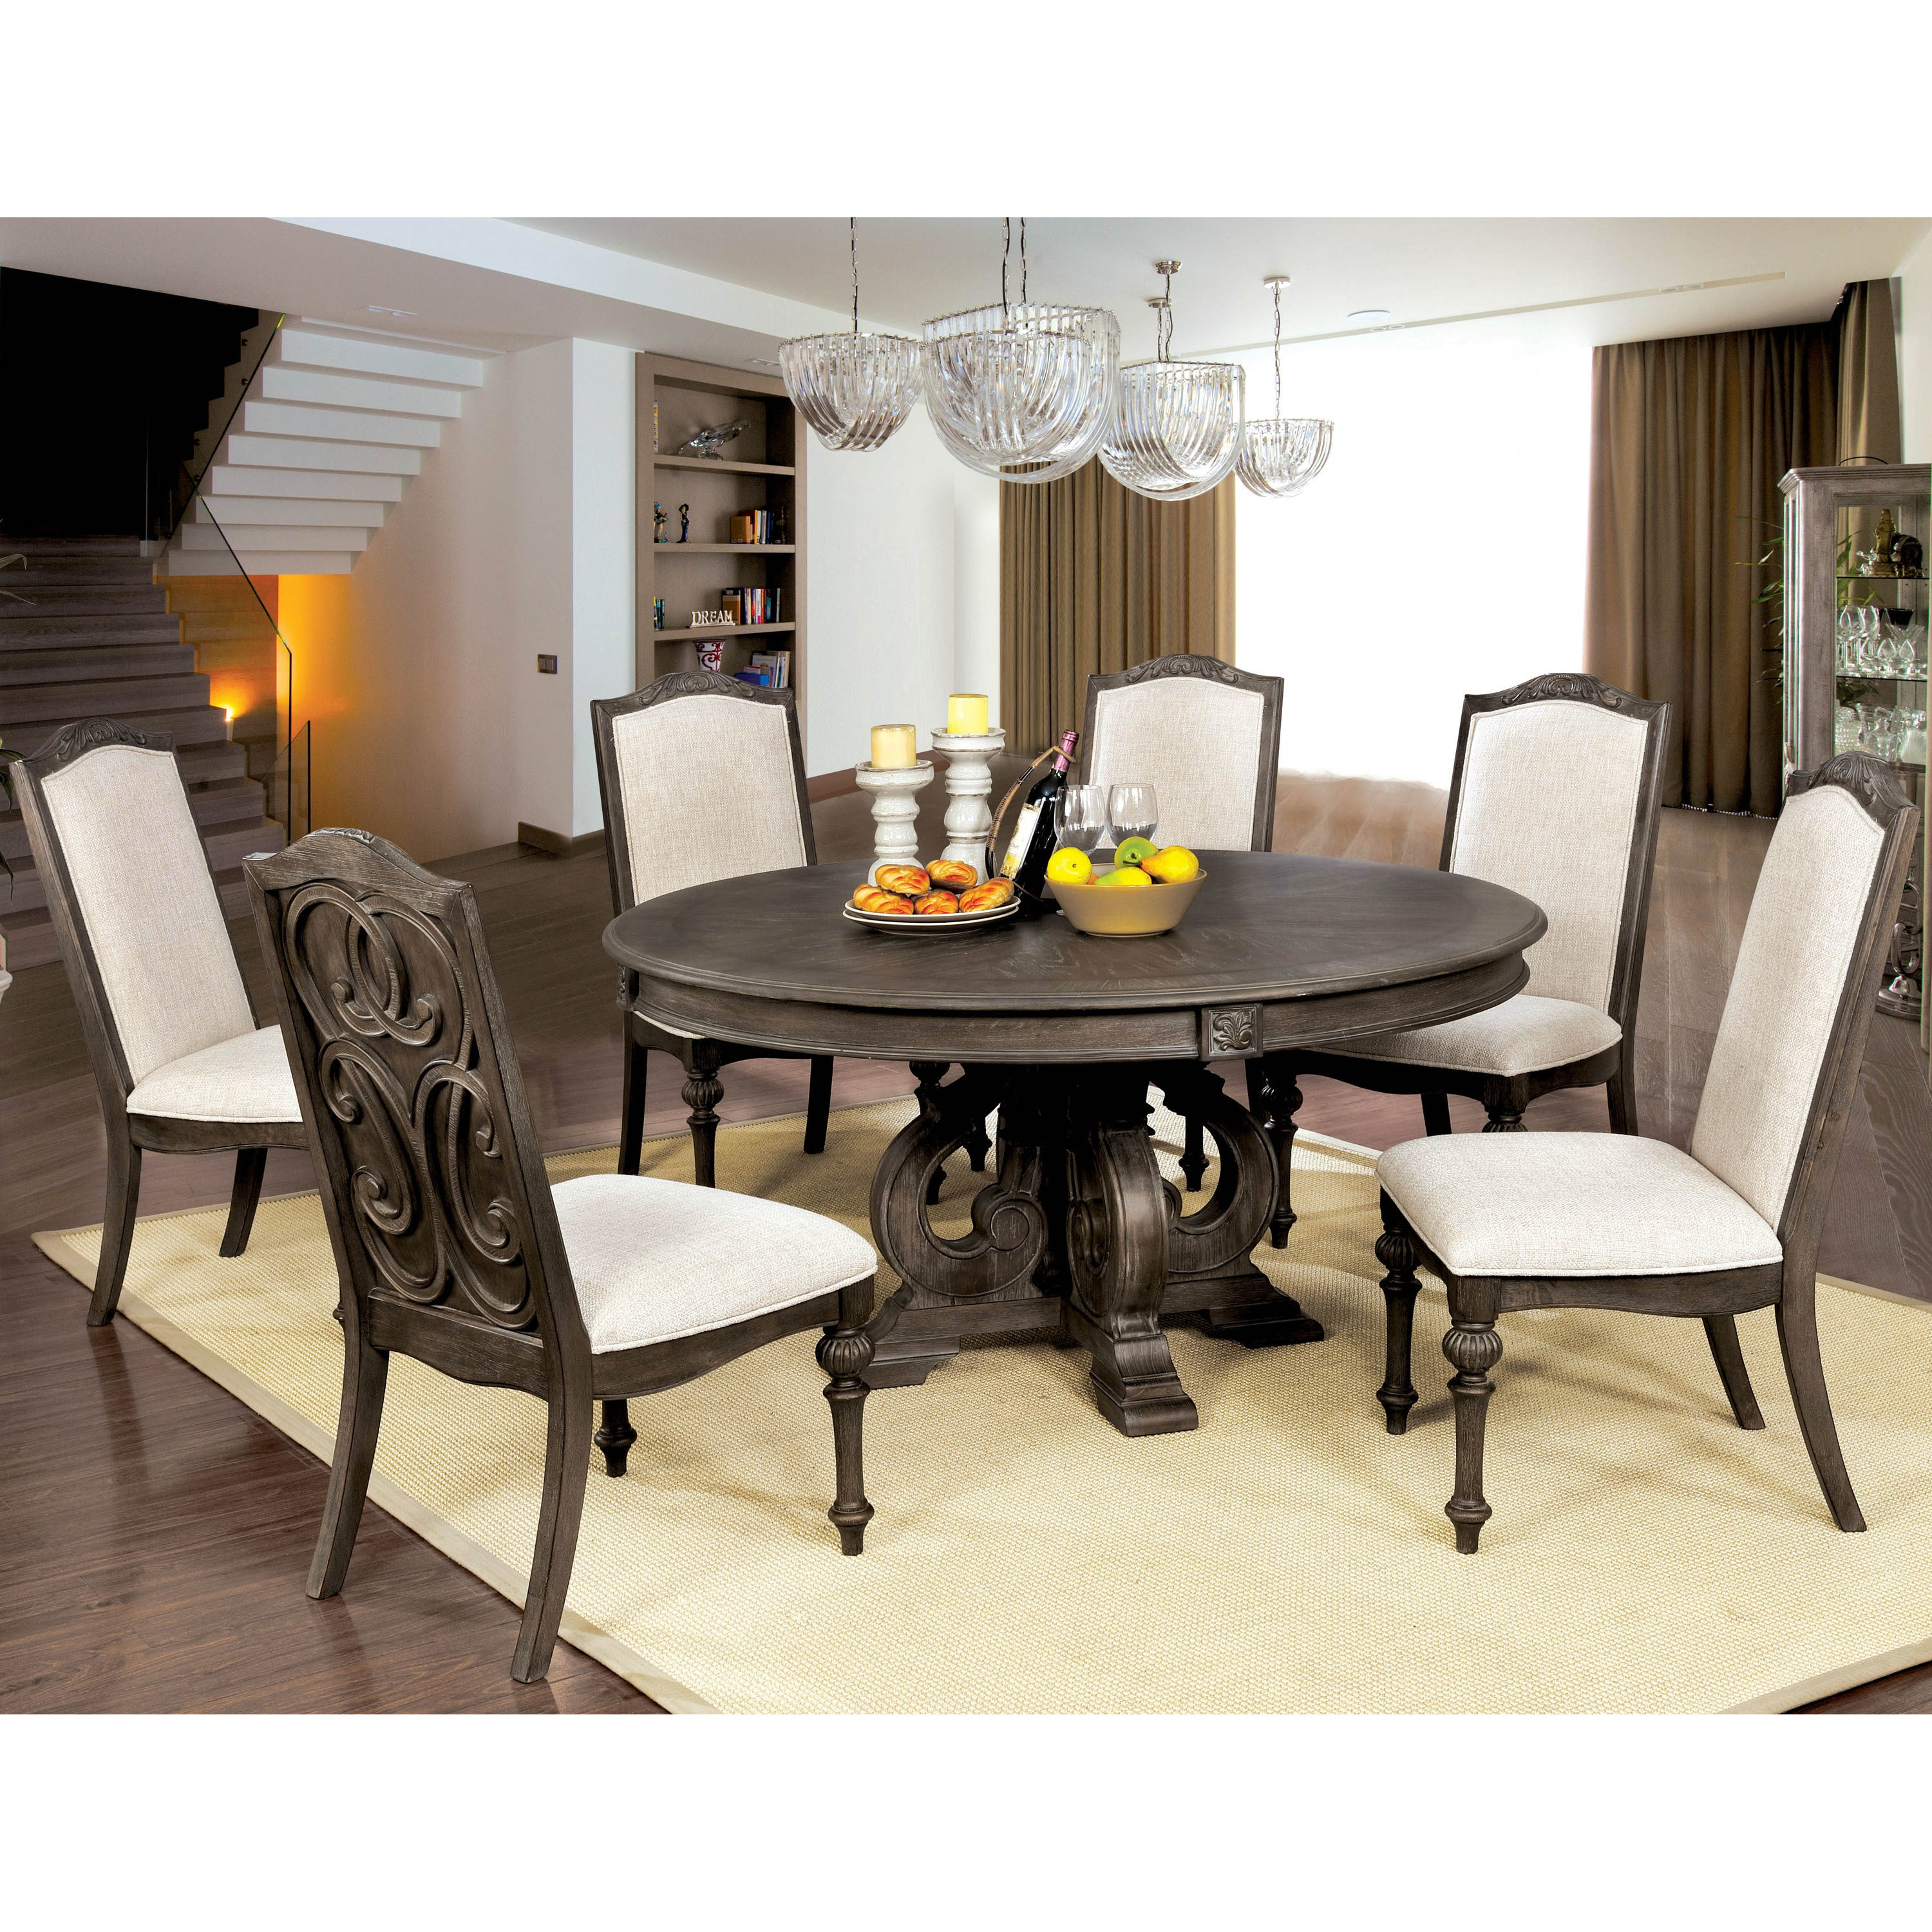 The Gray Barn New Lands Rustic Brown 60 Inch Round Dining Table Overstock 20911861